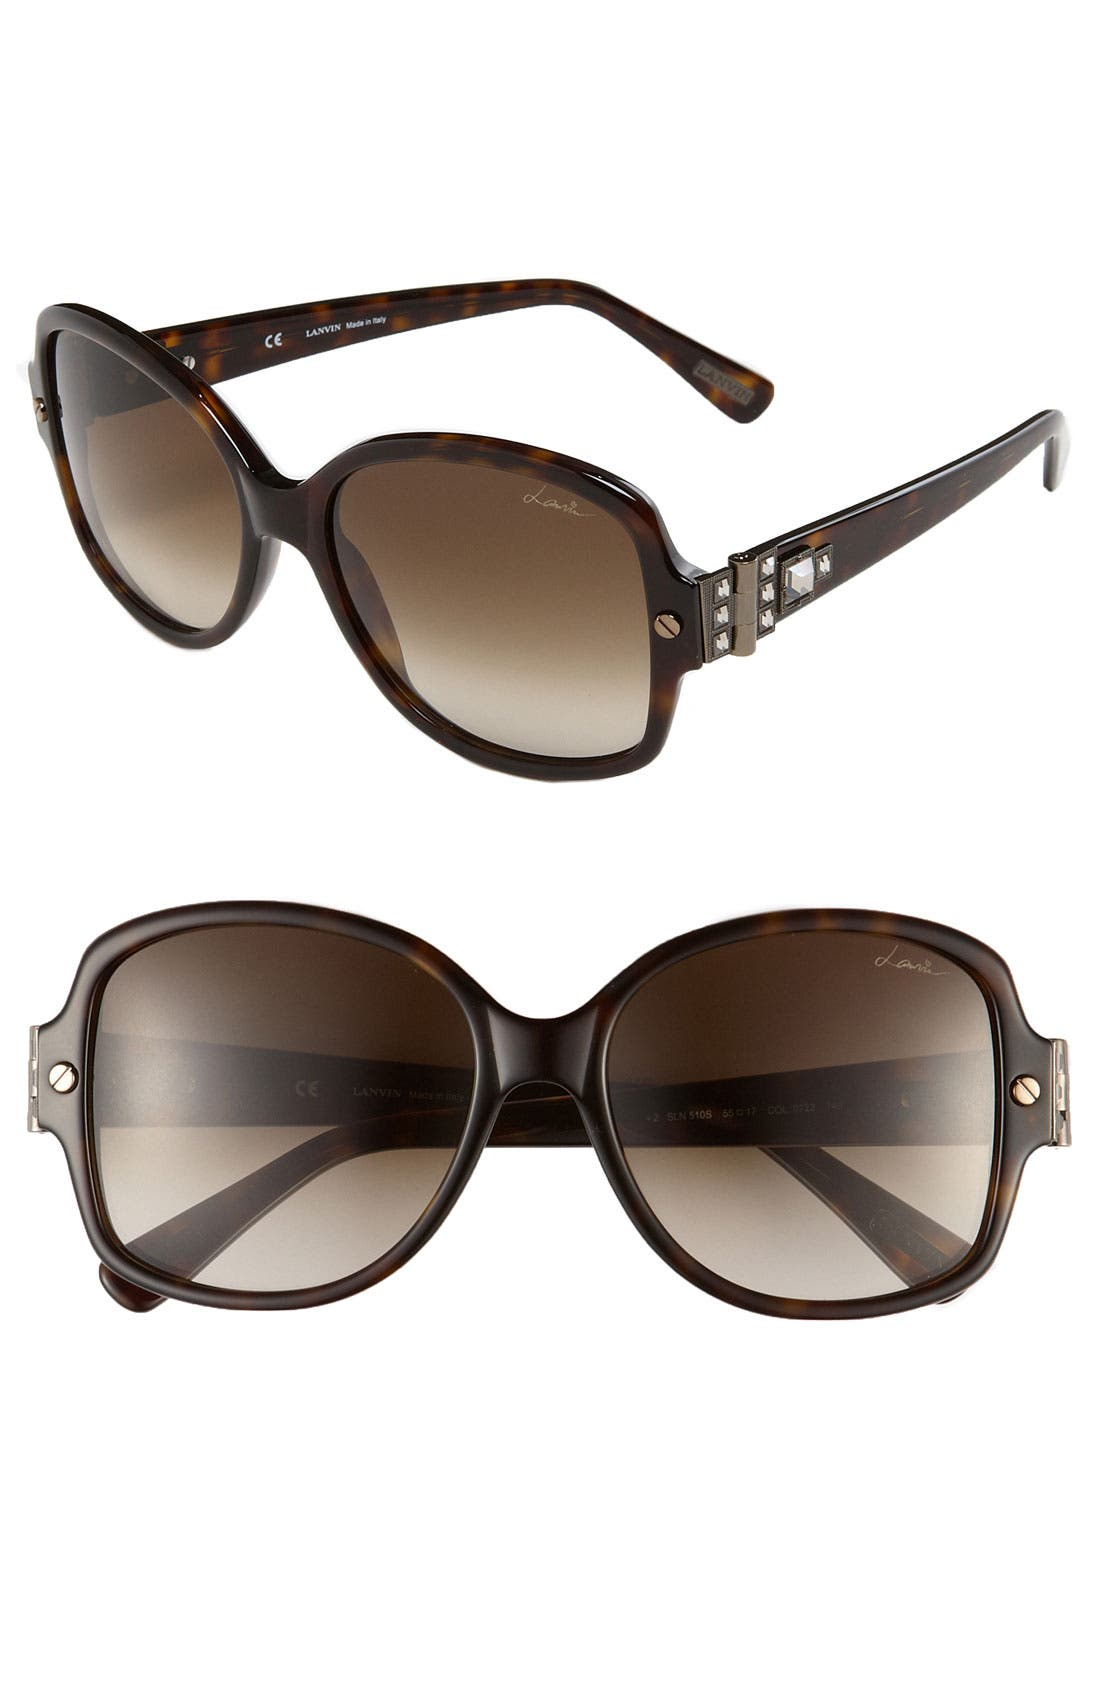 Alternate Image 1 Selected - Lanvin Oversized Swarovski Crystal Sunglasses